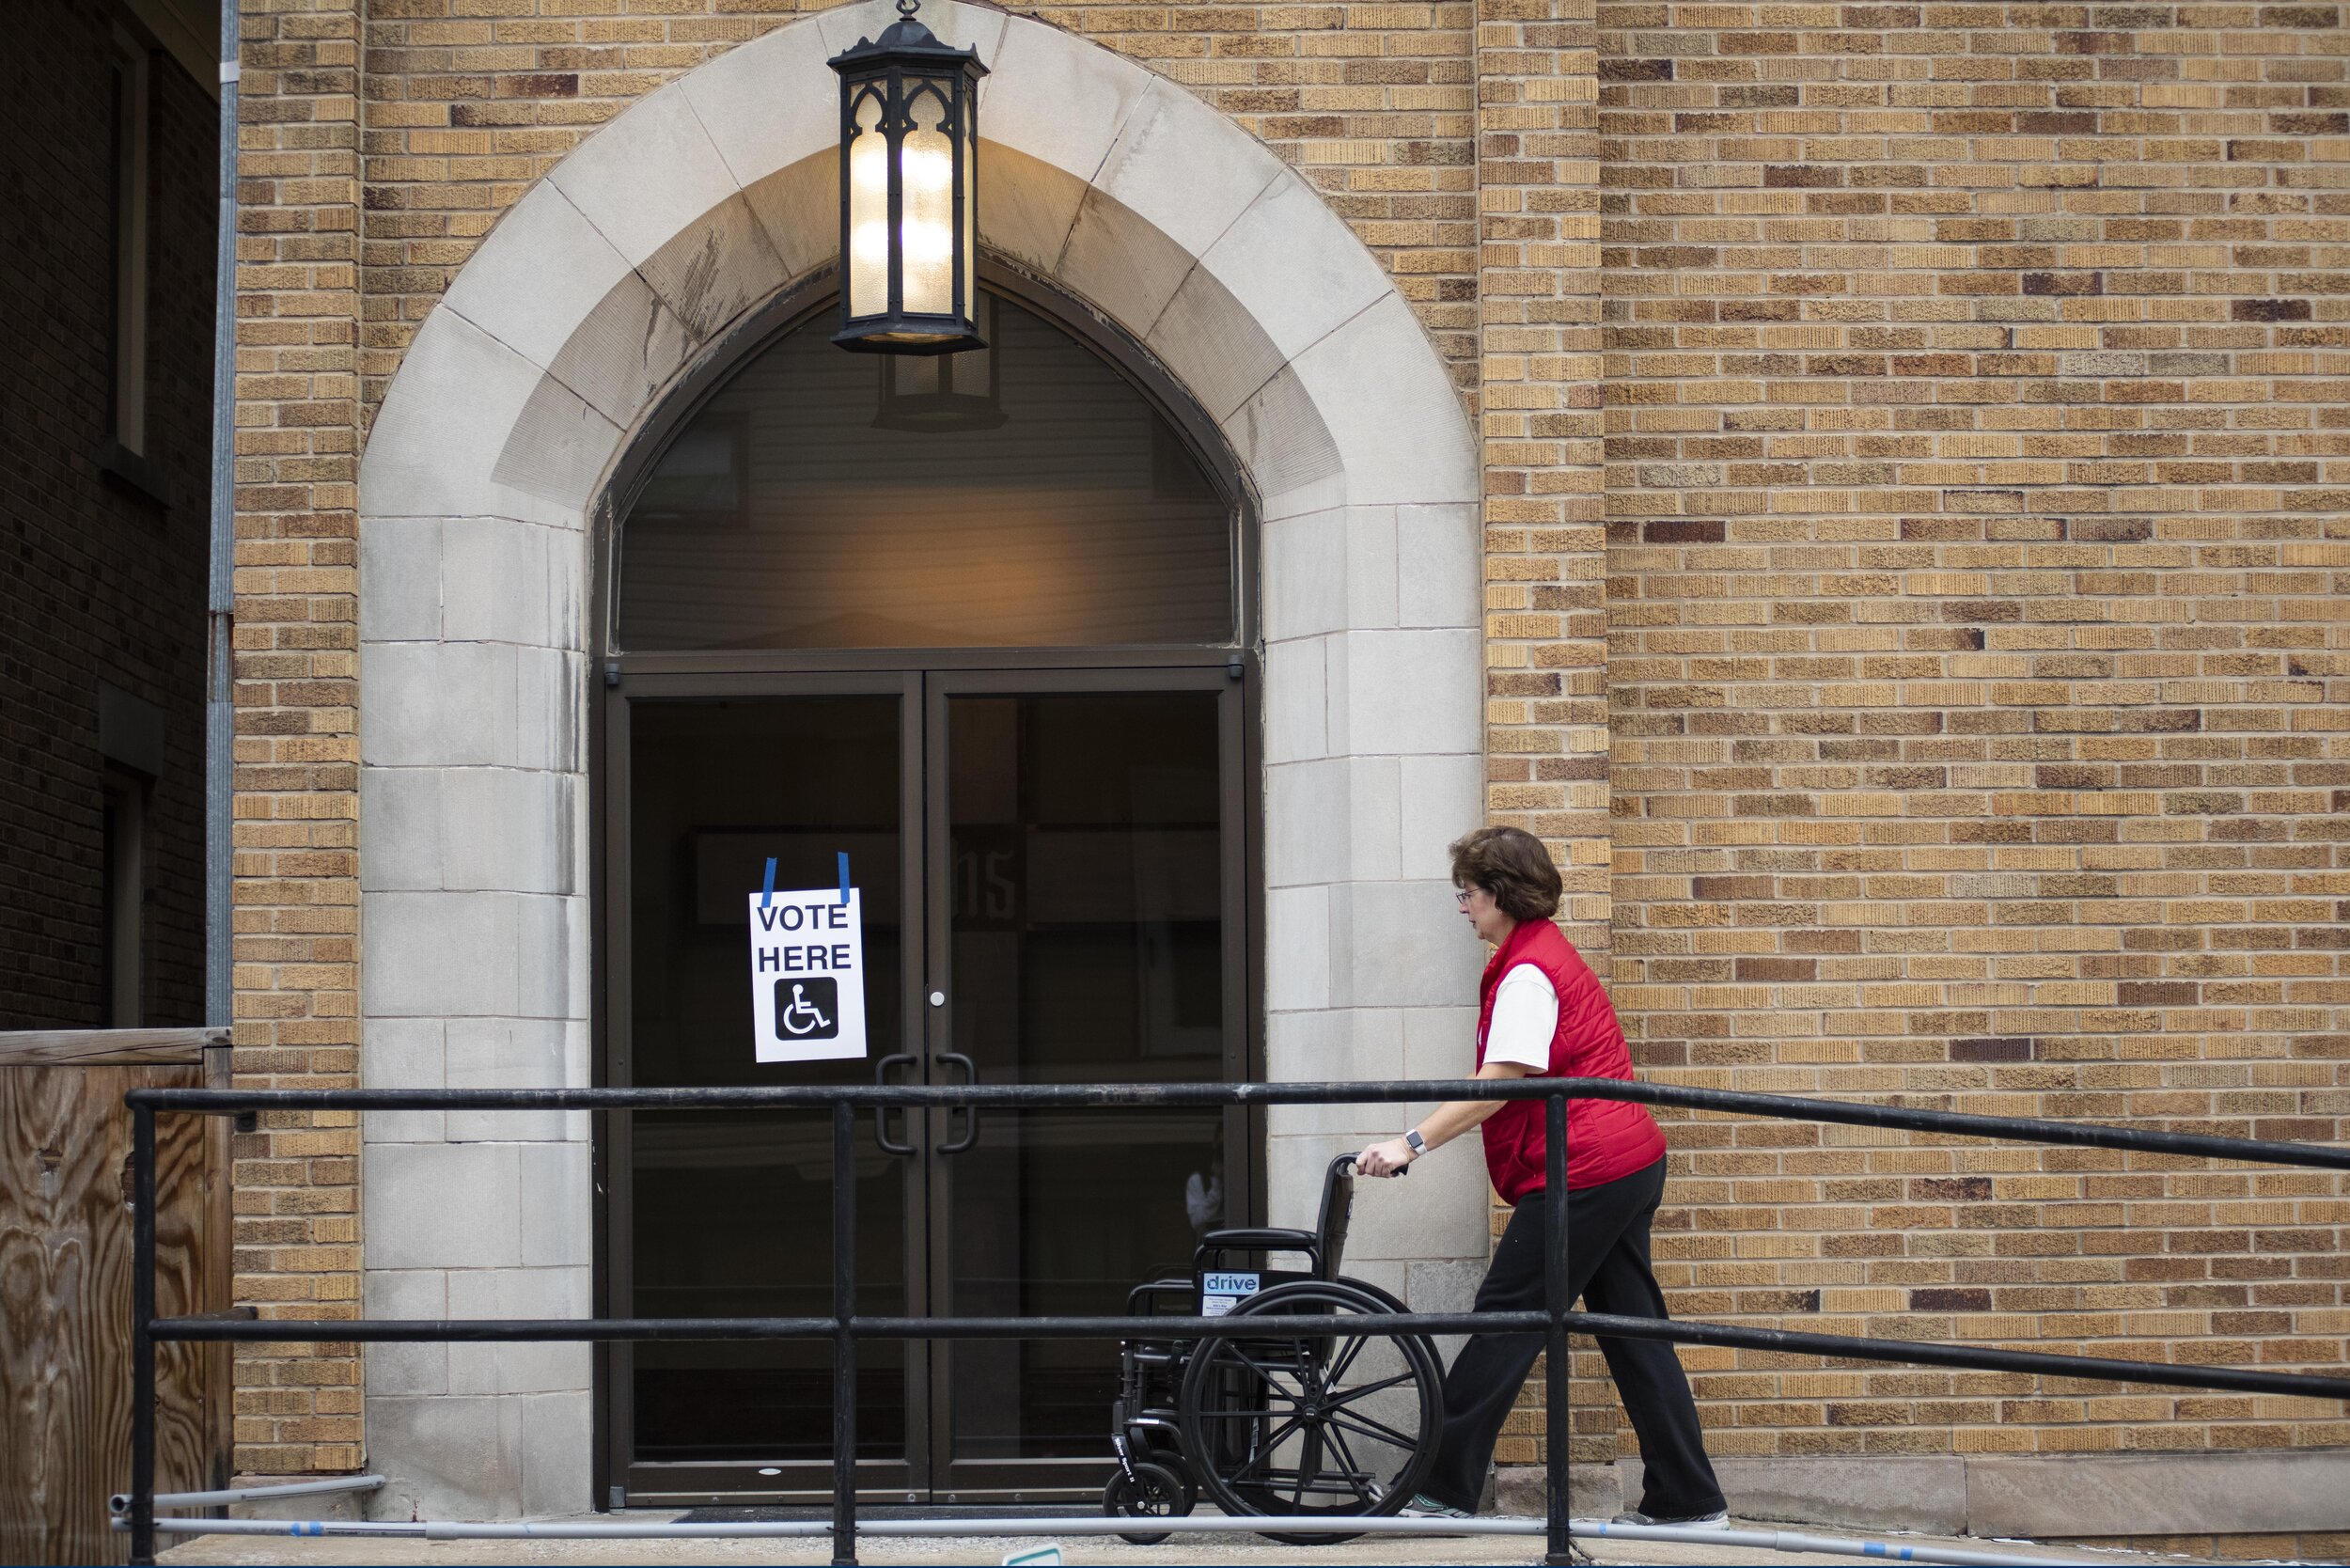 Cindy Kelley, of Altoona, Pa. pushes a wheelchair into the poling place at Bethany Lutheran Church on Tuesday, Nov. 5, 2019 in Altoona, Pa. | Photo by: Noah Riffe